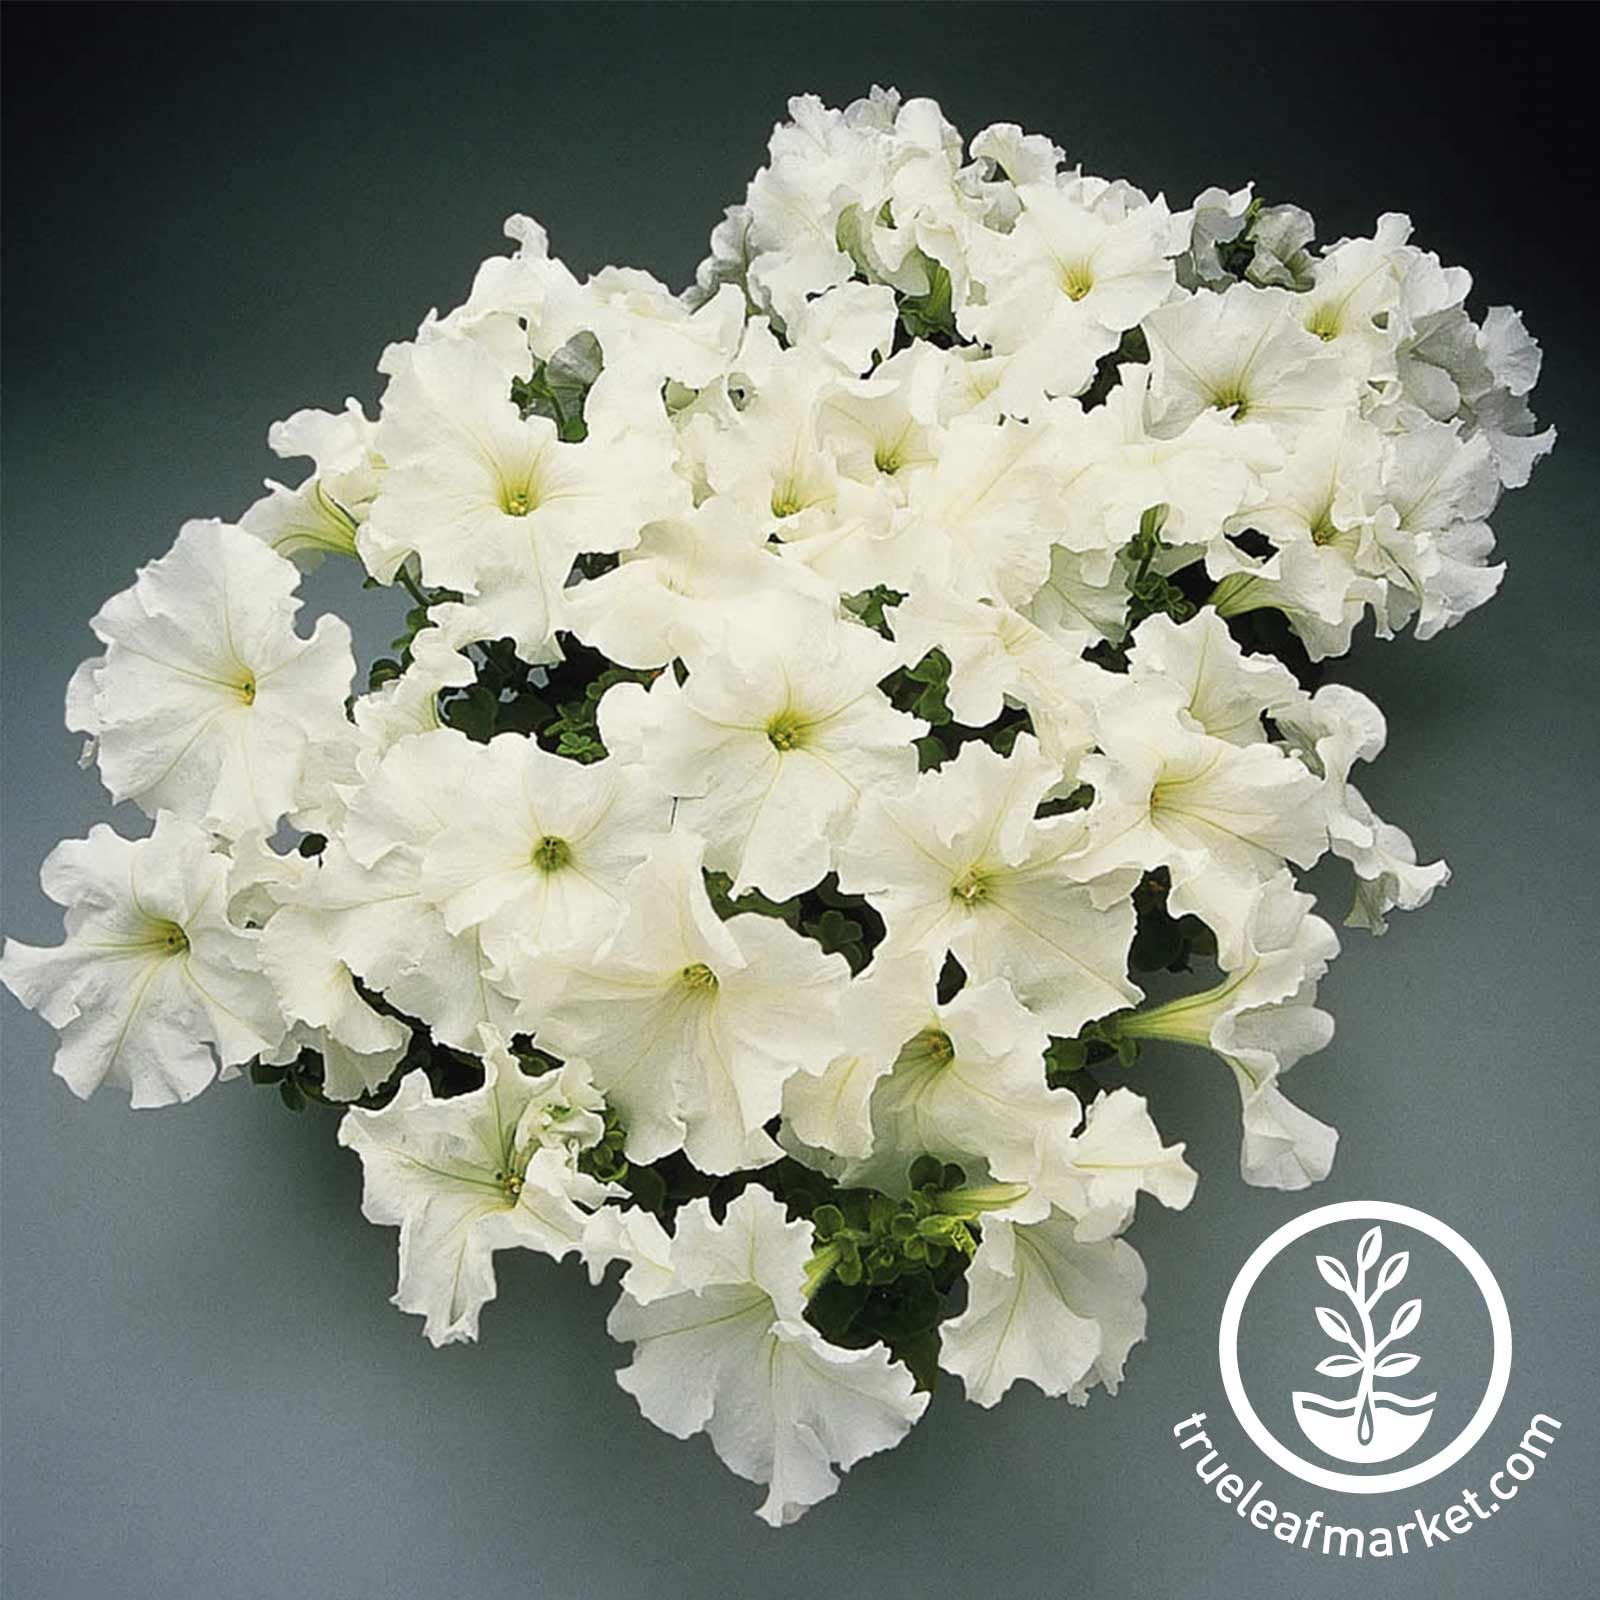 Petunia - Supercascade Series (pelleted) - White